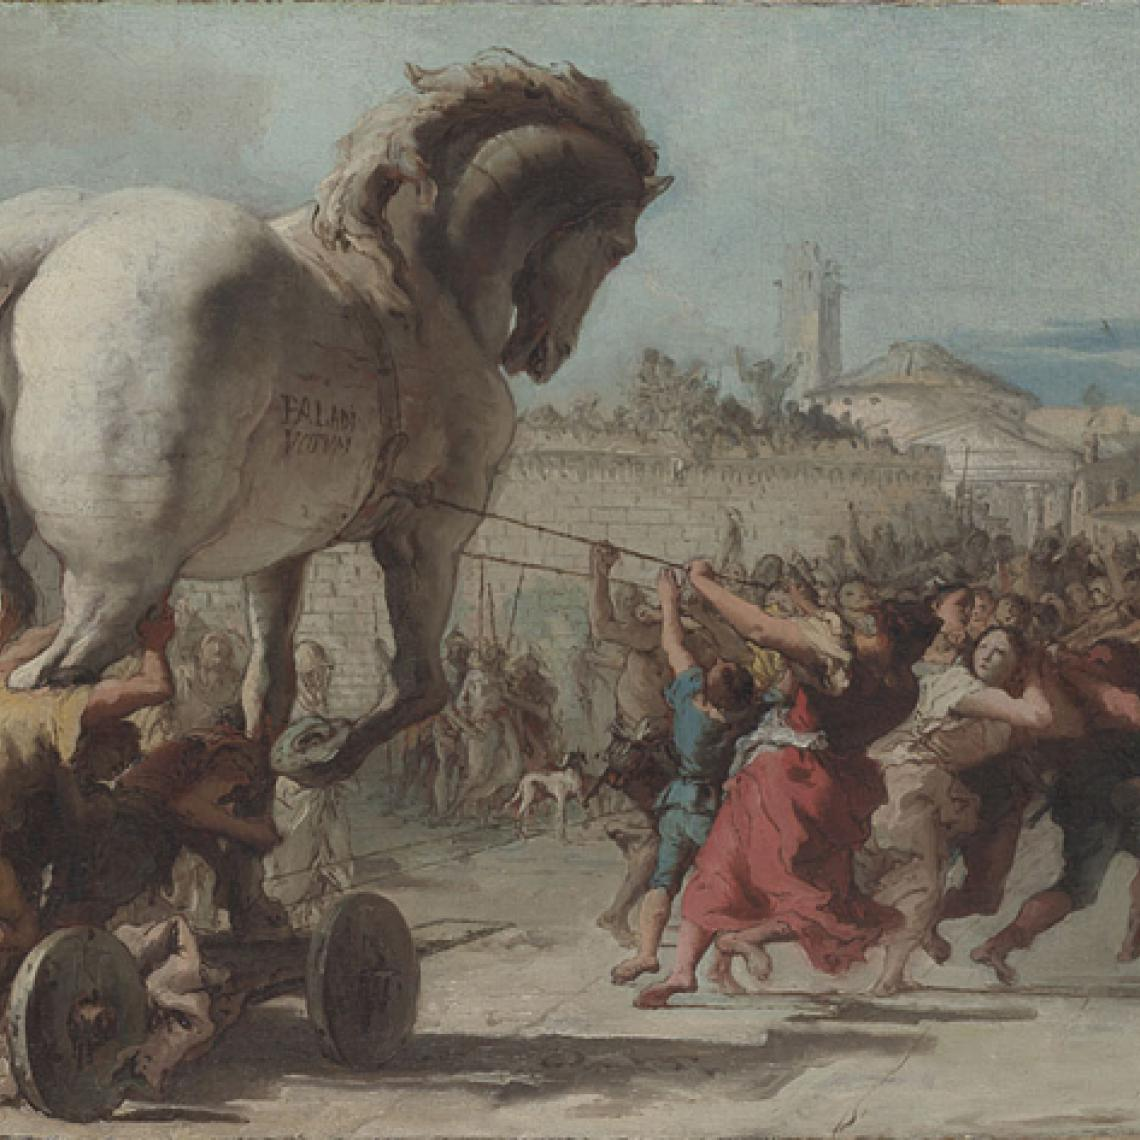 Alicja Bachulska 1 Trojan Horse from National Gallery CC licensee.jpg